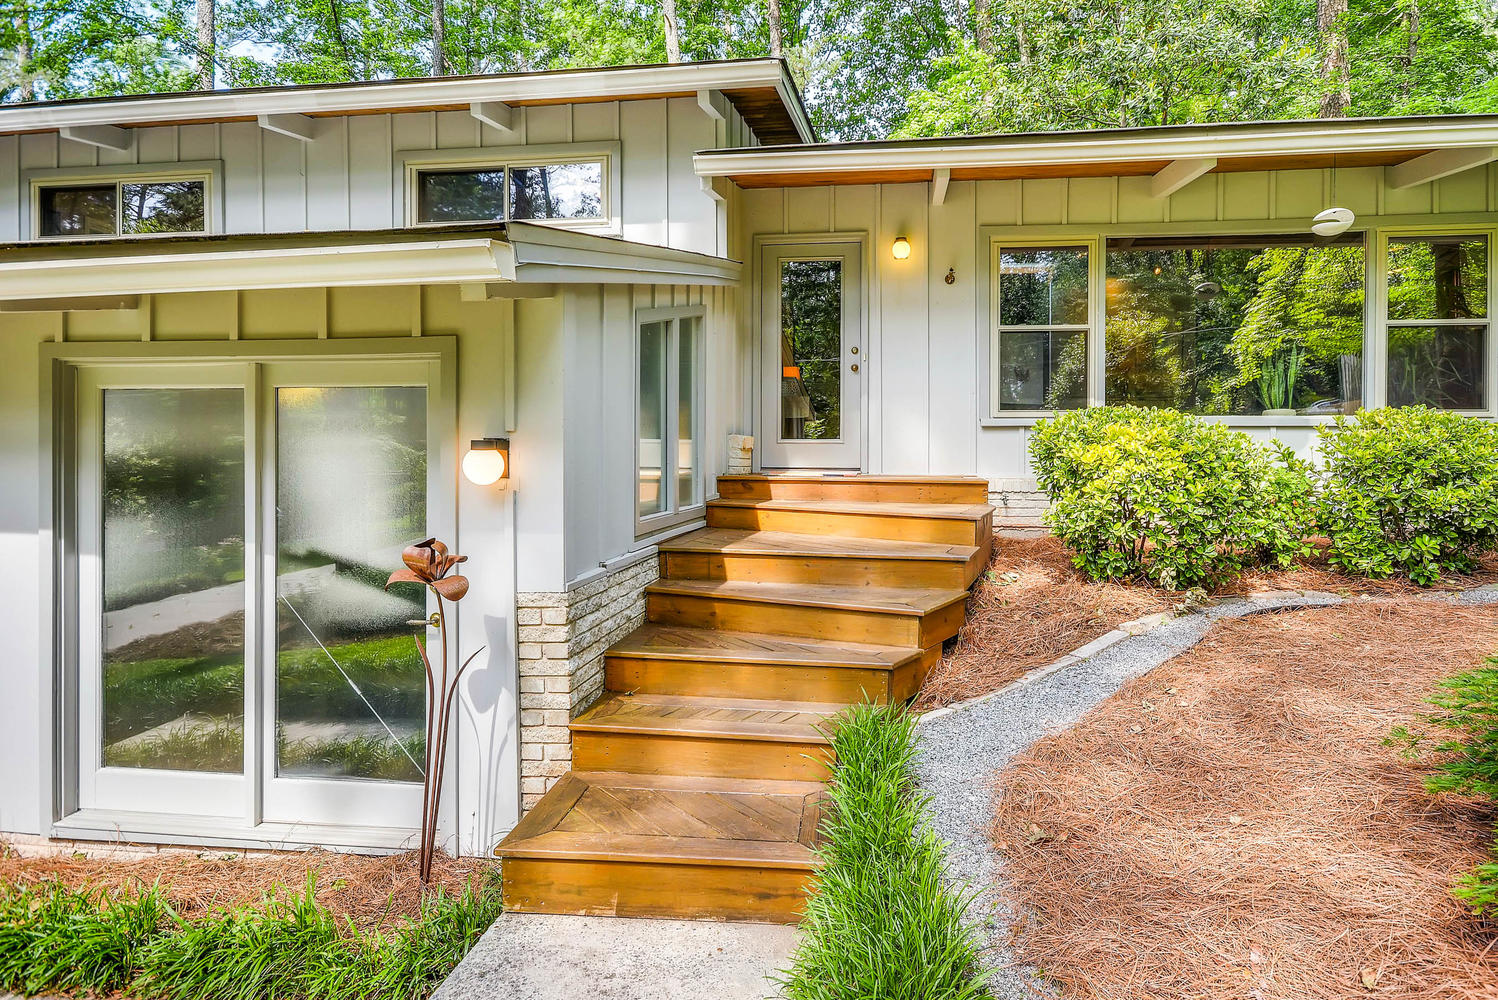 modern atlanta homes for sale mid century modern homes for sale - Mid Century Modern Homes